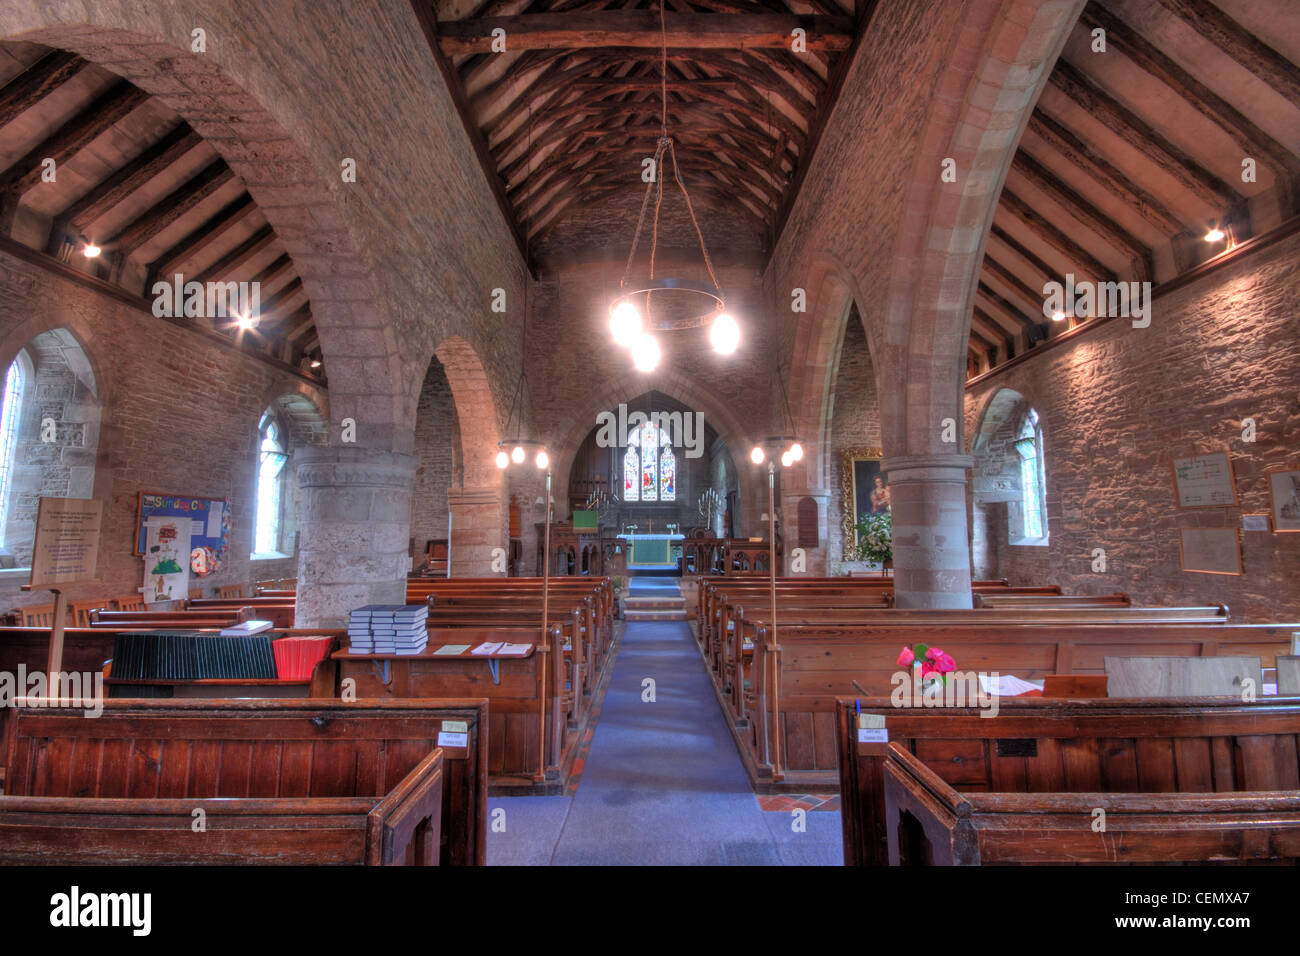 Interior view of St Marys Church Linton, Forest of Dean Micheldean, Gloucester, Glos, England, UK. Shows stonework Stock Photo